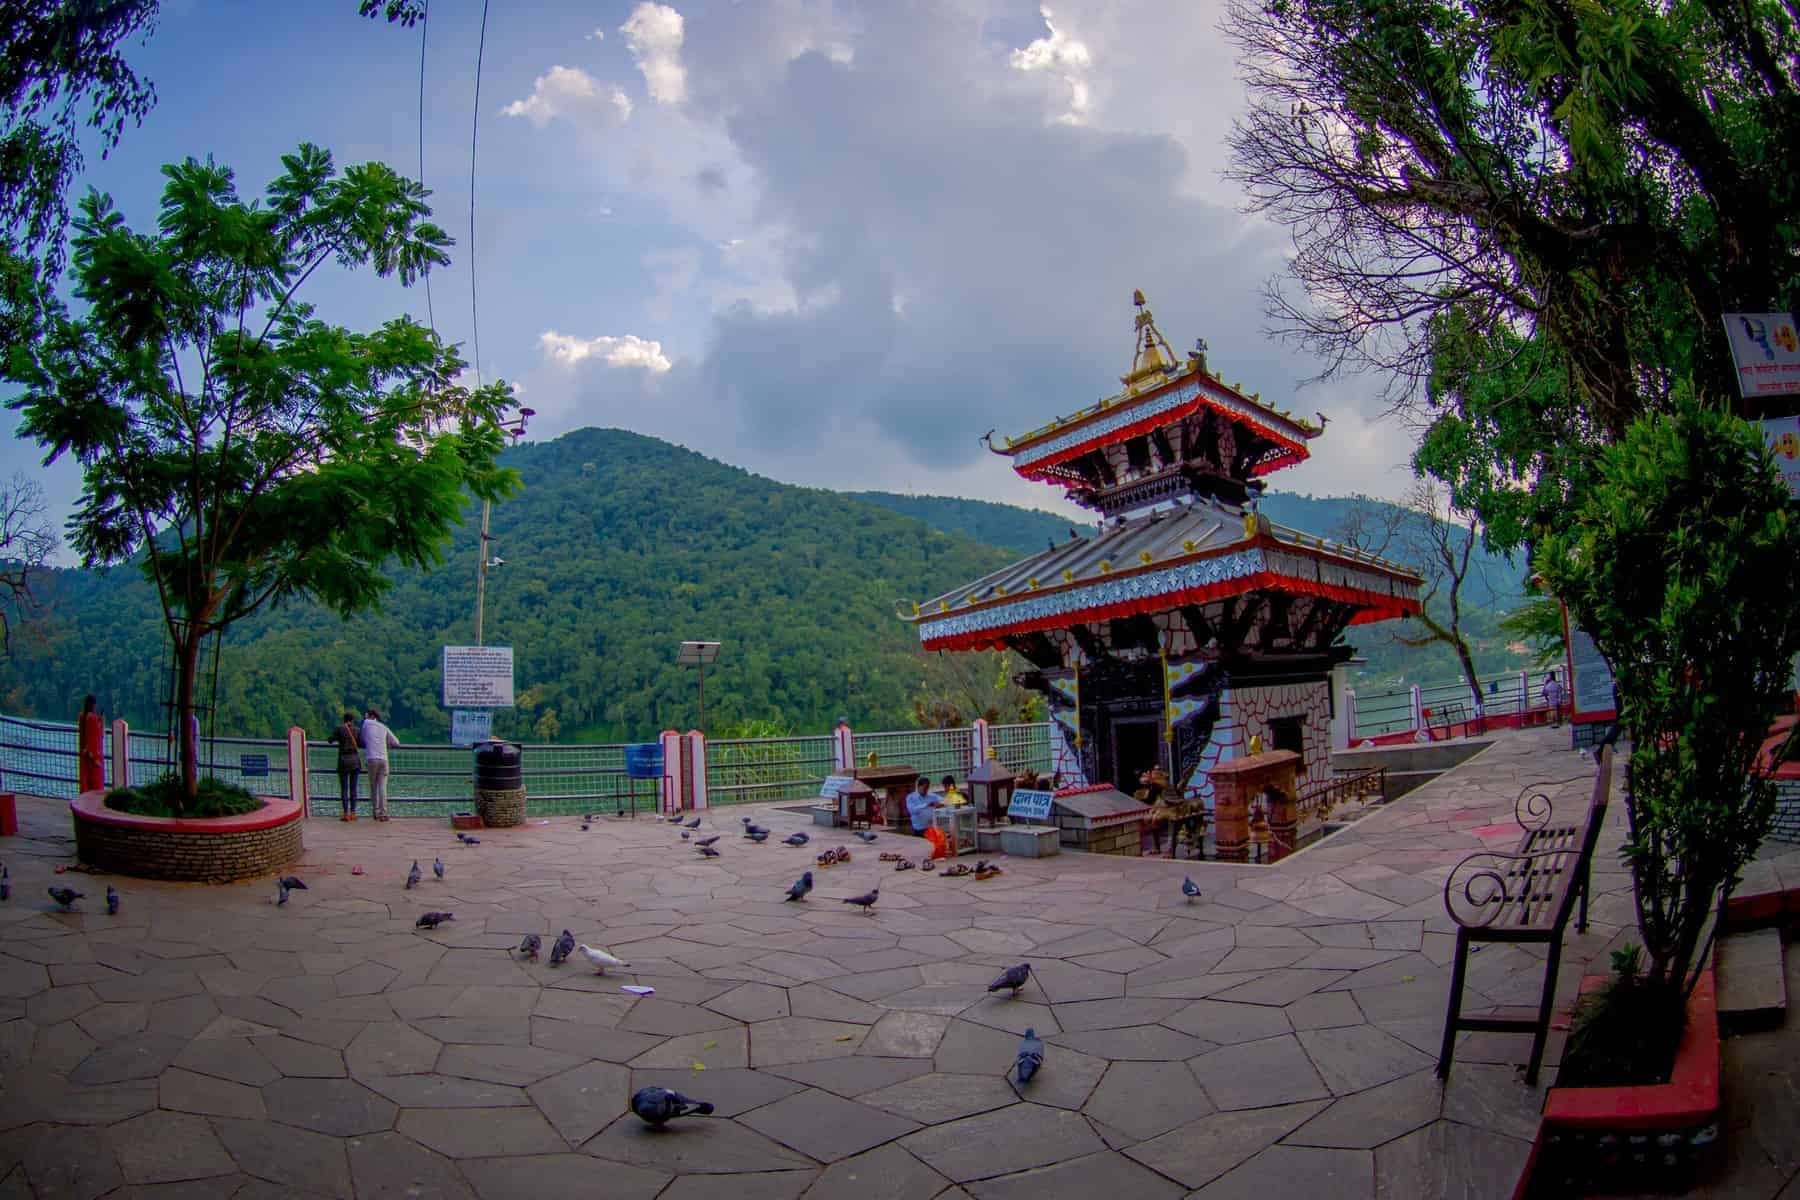 POKHARA, NEPAL - People walking around of Tal Barahi Temple, located at the center of Phewa Lake, is the most important religious monument of Pokhara.